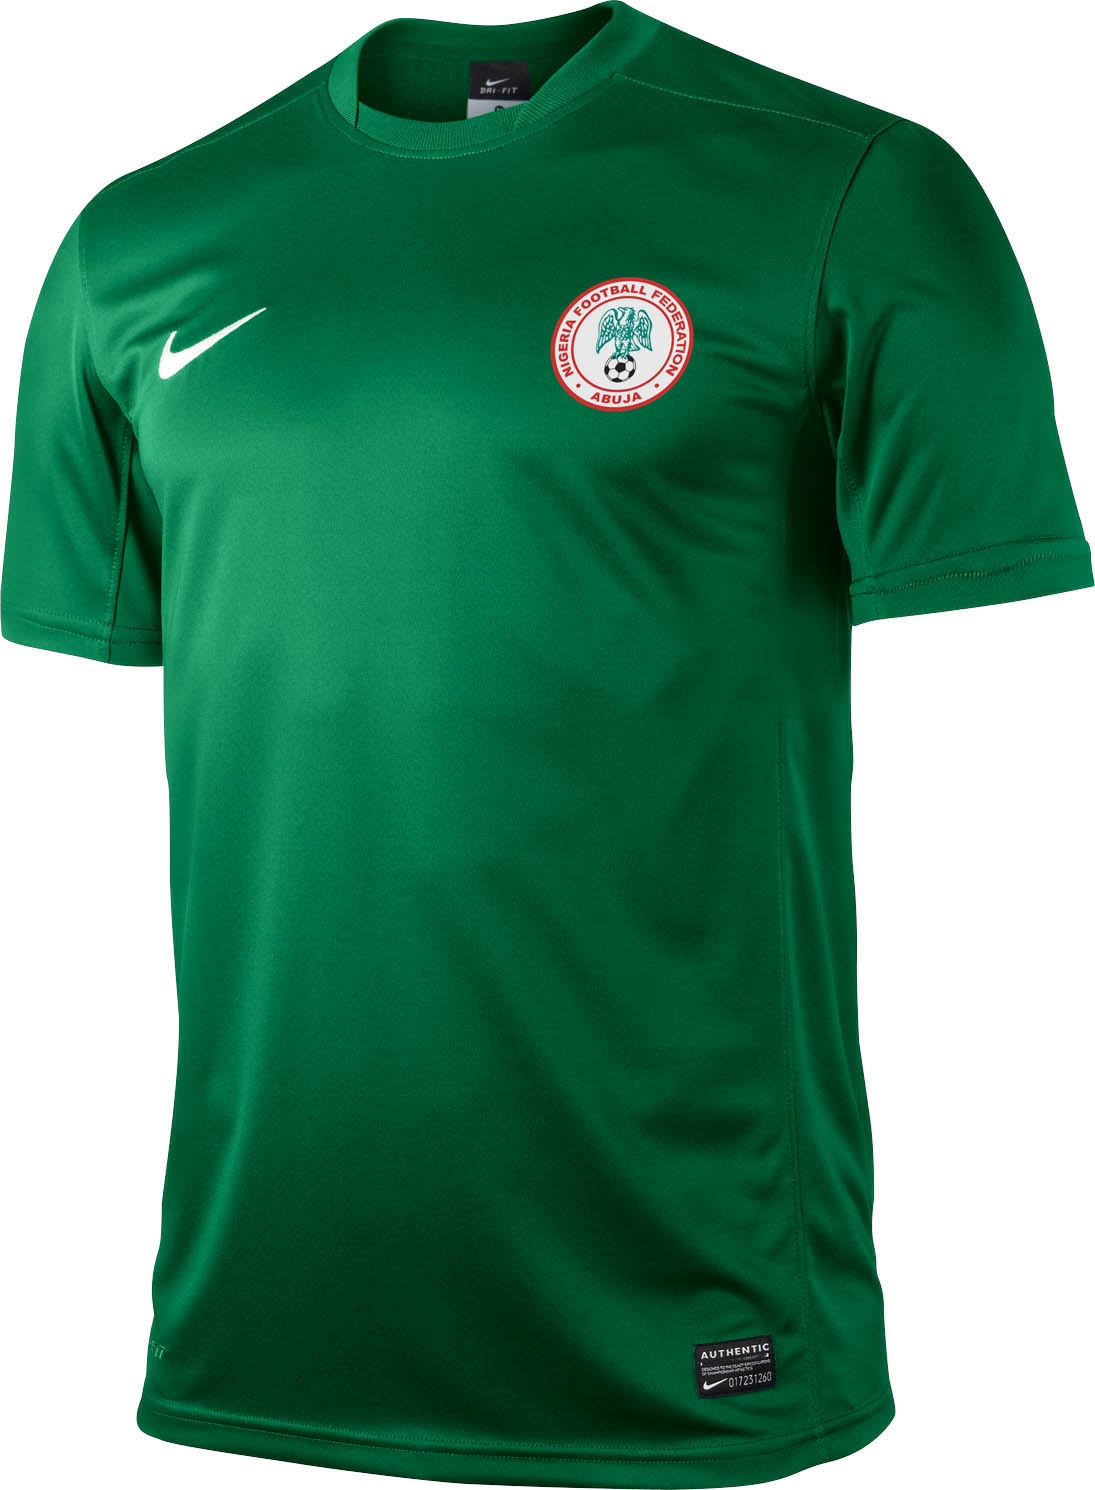 What to Expect for the Nike Nigeria 2015 Kit? - Footy ...